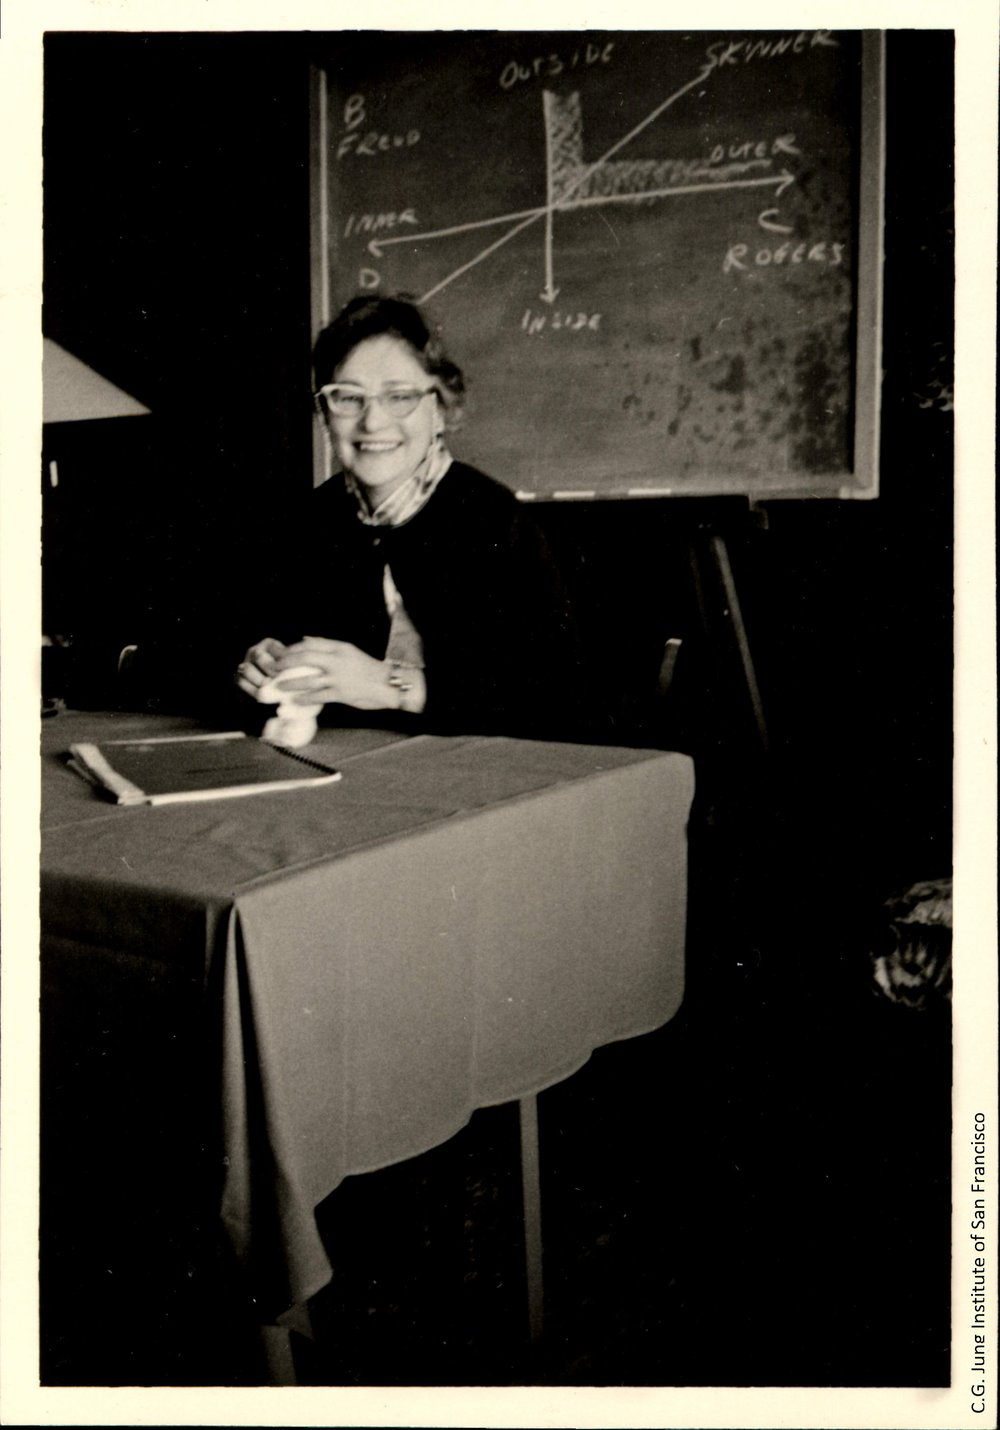 Clare Thompson presenting at North-South Conference, 1958